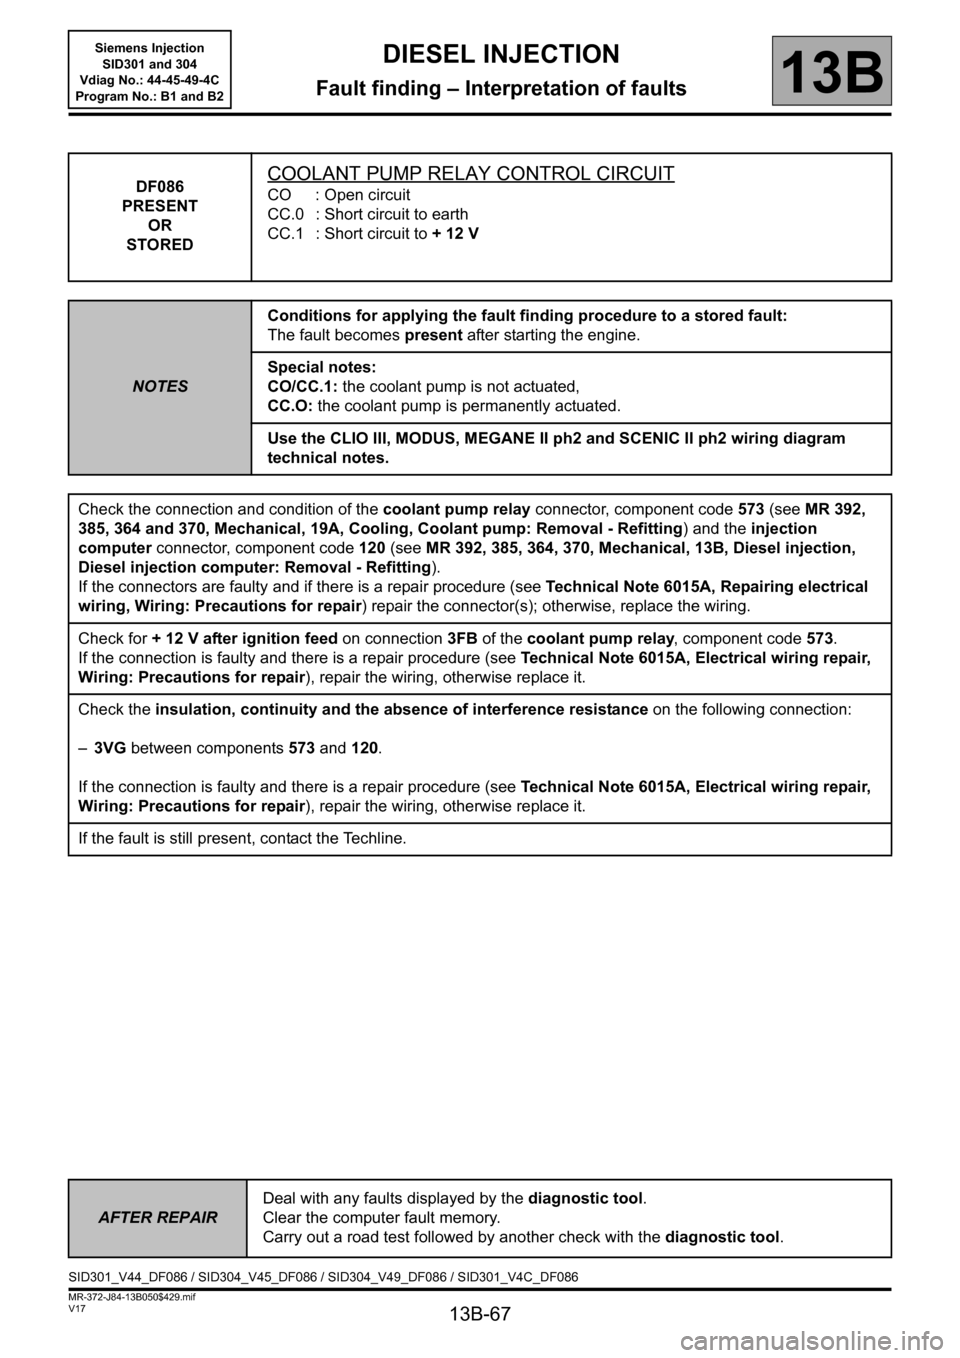 RENAULT SCENIC 2011 J95 / 3.G Engine And Peripherals Siemens Injection Workshop Manual, Page 67